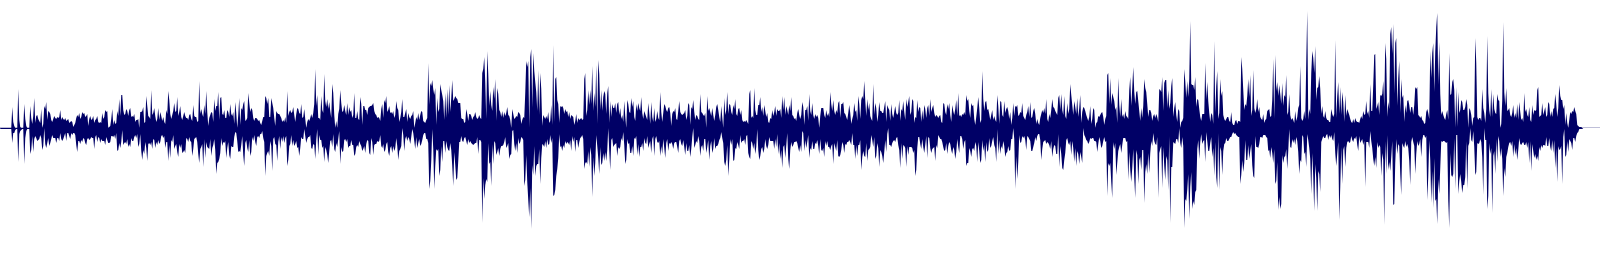 waveform of track #132193